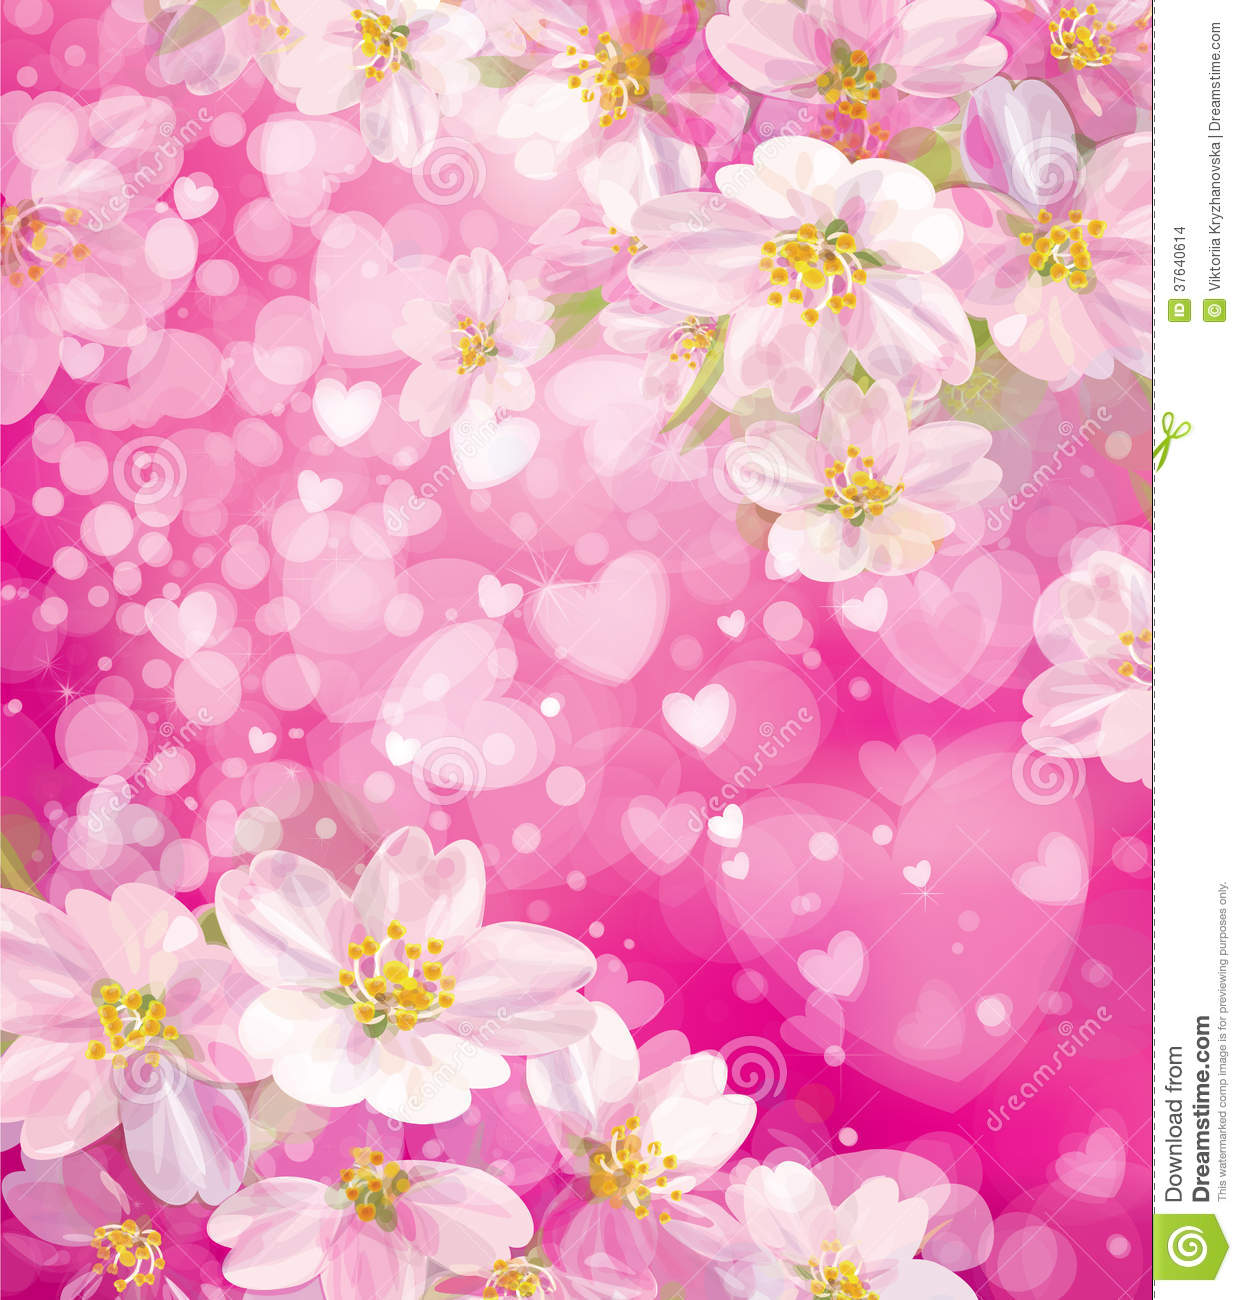 Vector pink background hearts flowers stock illustrations 2203 vector pink background hearts flowers stock illustrations 2203 vector pink background hearts flowers stock illustrations vectors clipart dreamstime mightylinksfo